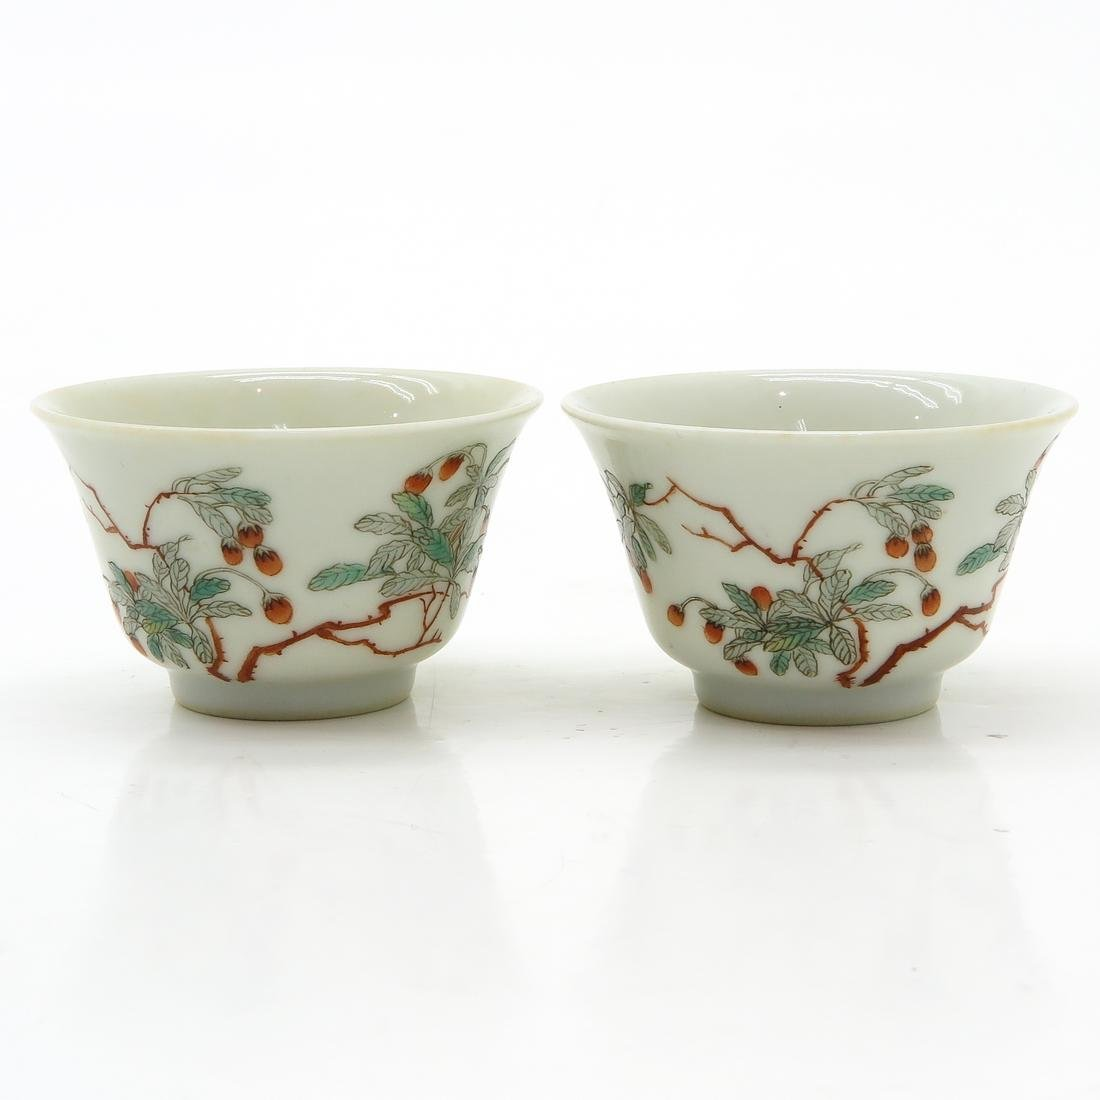 Lot of 2 Small Cups